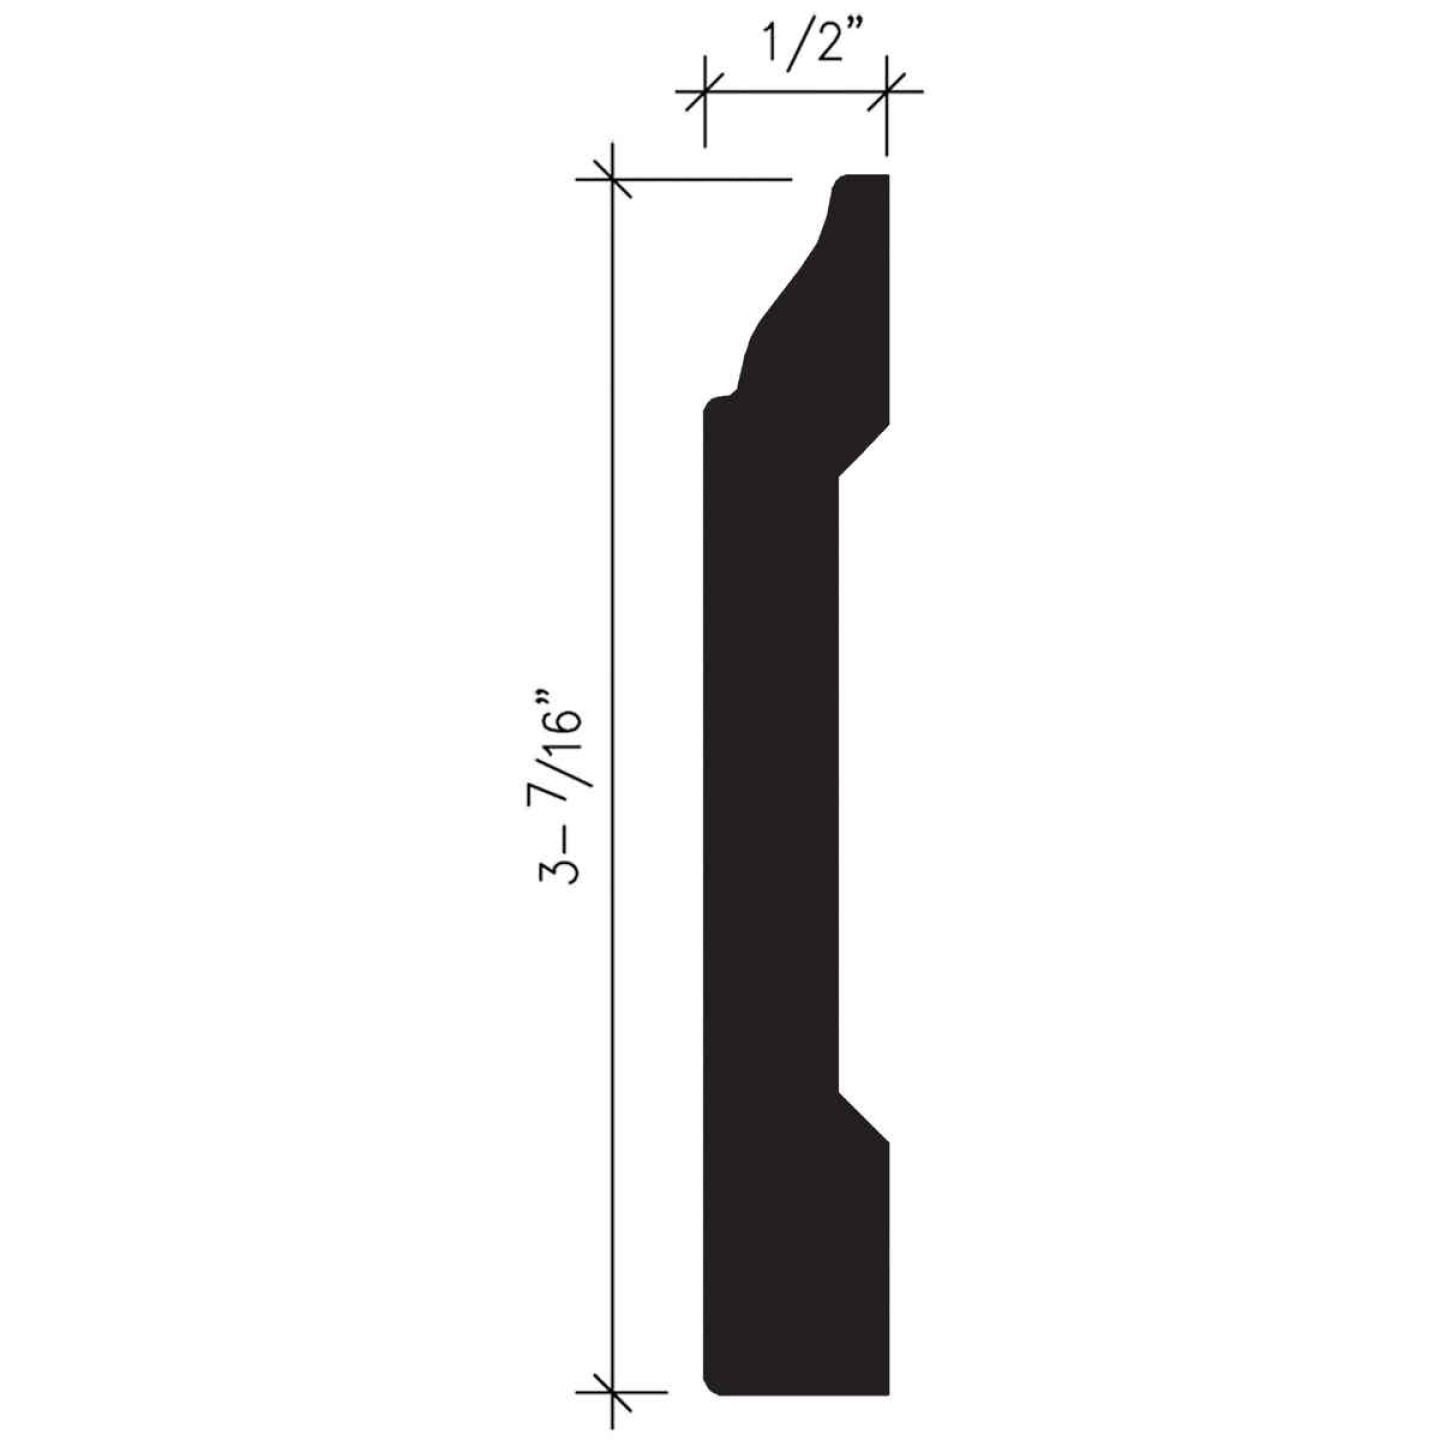 Inteplast Building Products 1/2 In. W. x 3-7/16 In. H. x 8 Ft. L. Ultra Oak Polystyrene Colonial Base Molding Image 4